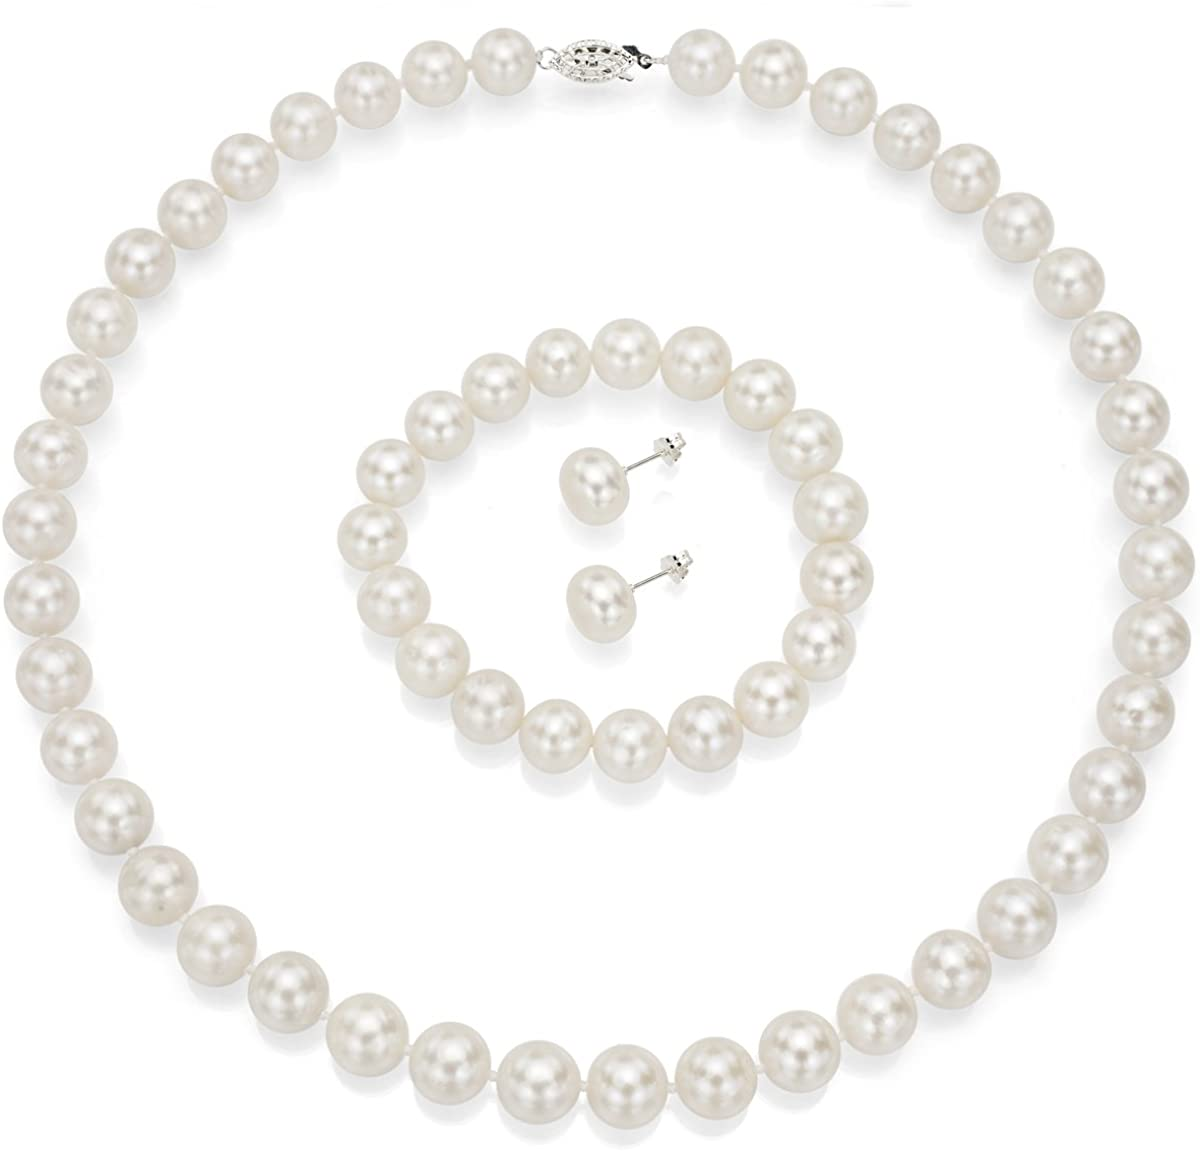 Sterling Silver 10-10.5mm White Freshwater Cultured Pearl Necklace 18 and Stud Earrings Set